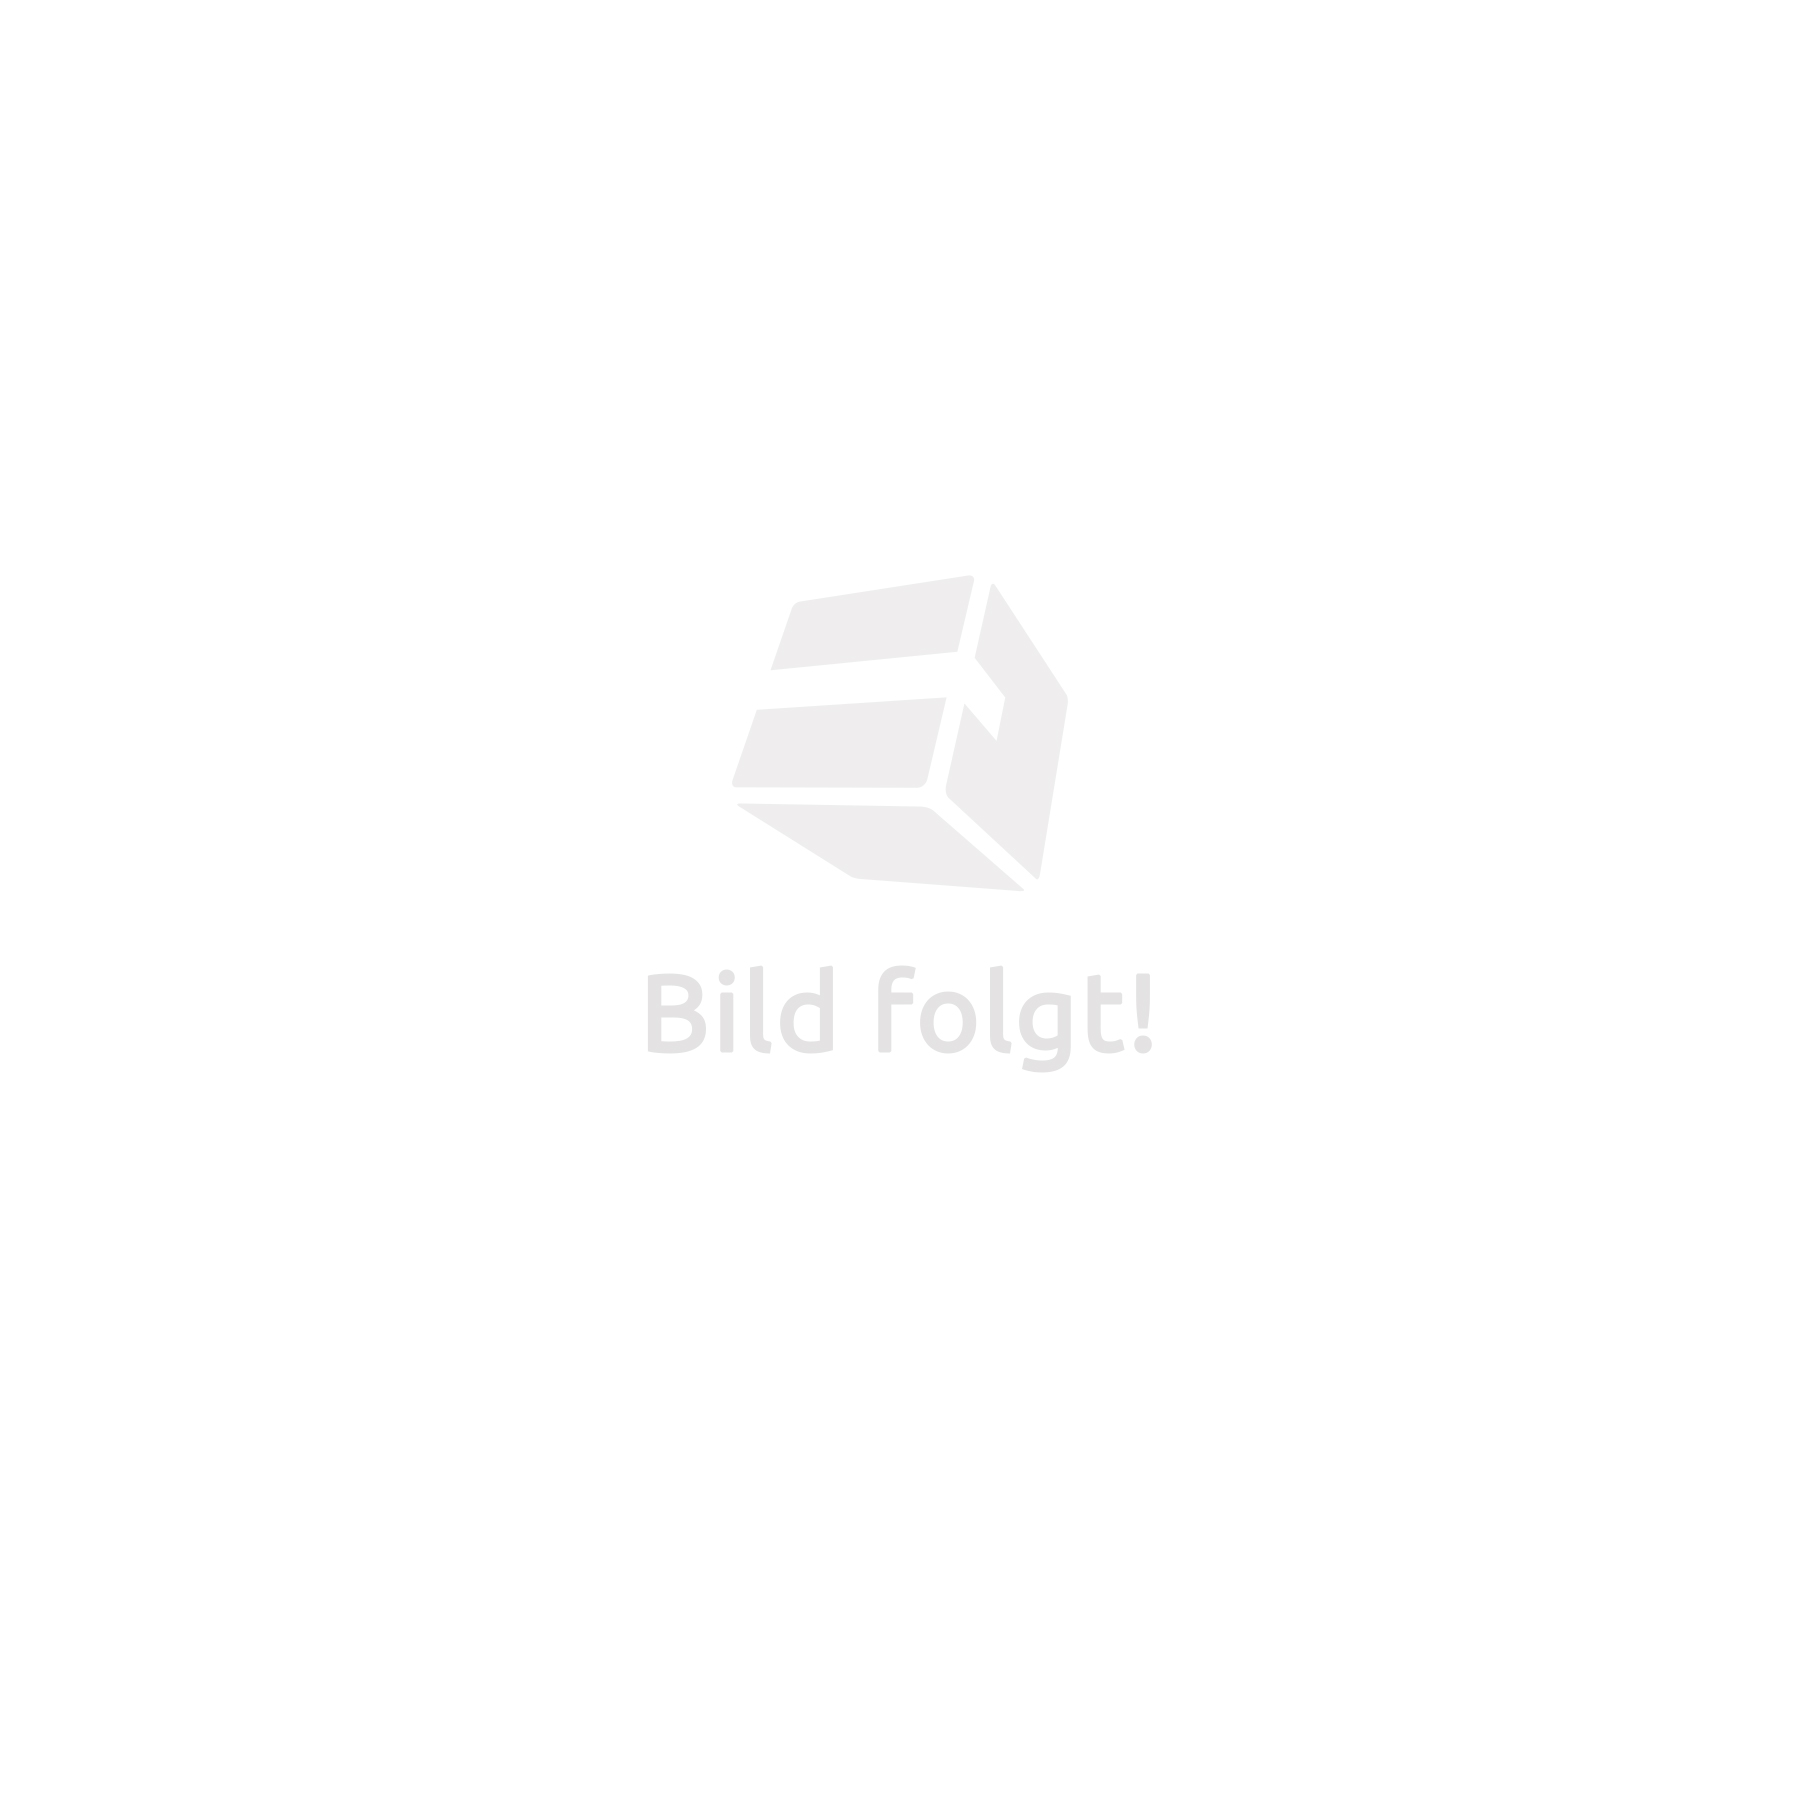 2x photography lighting for digital and analog photos